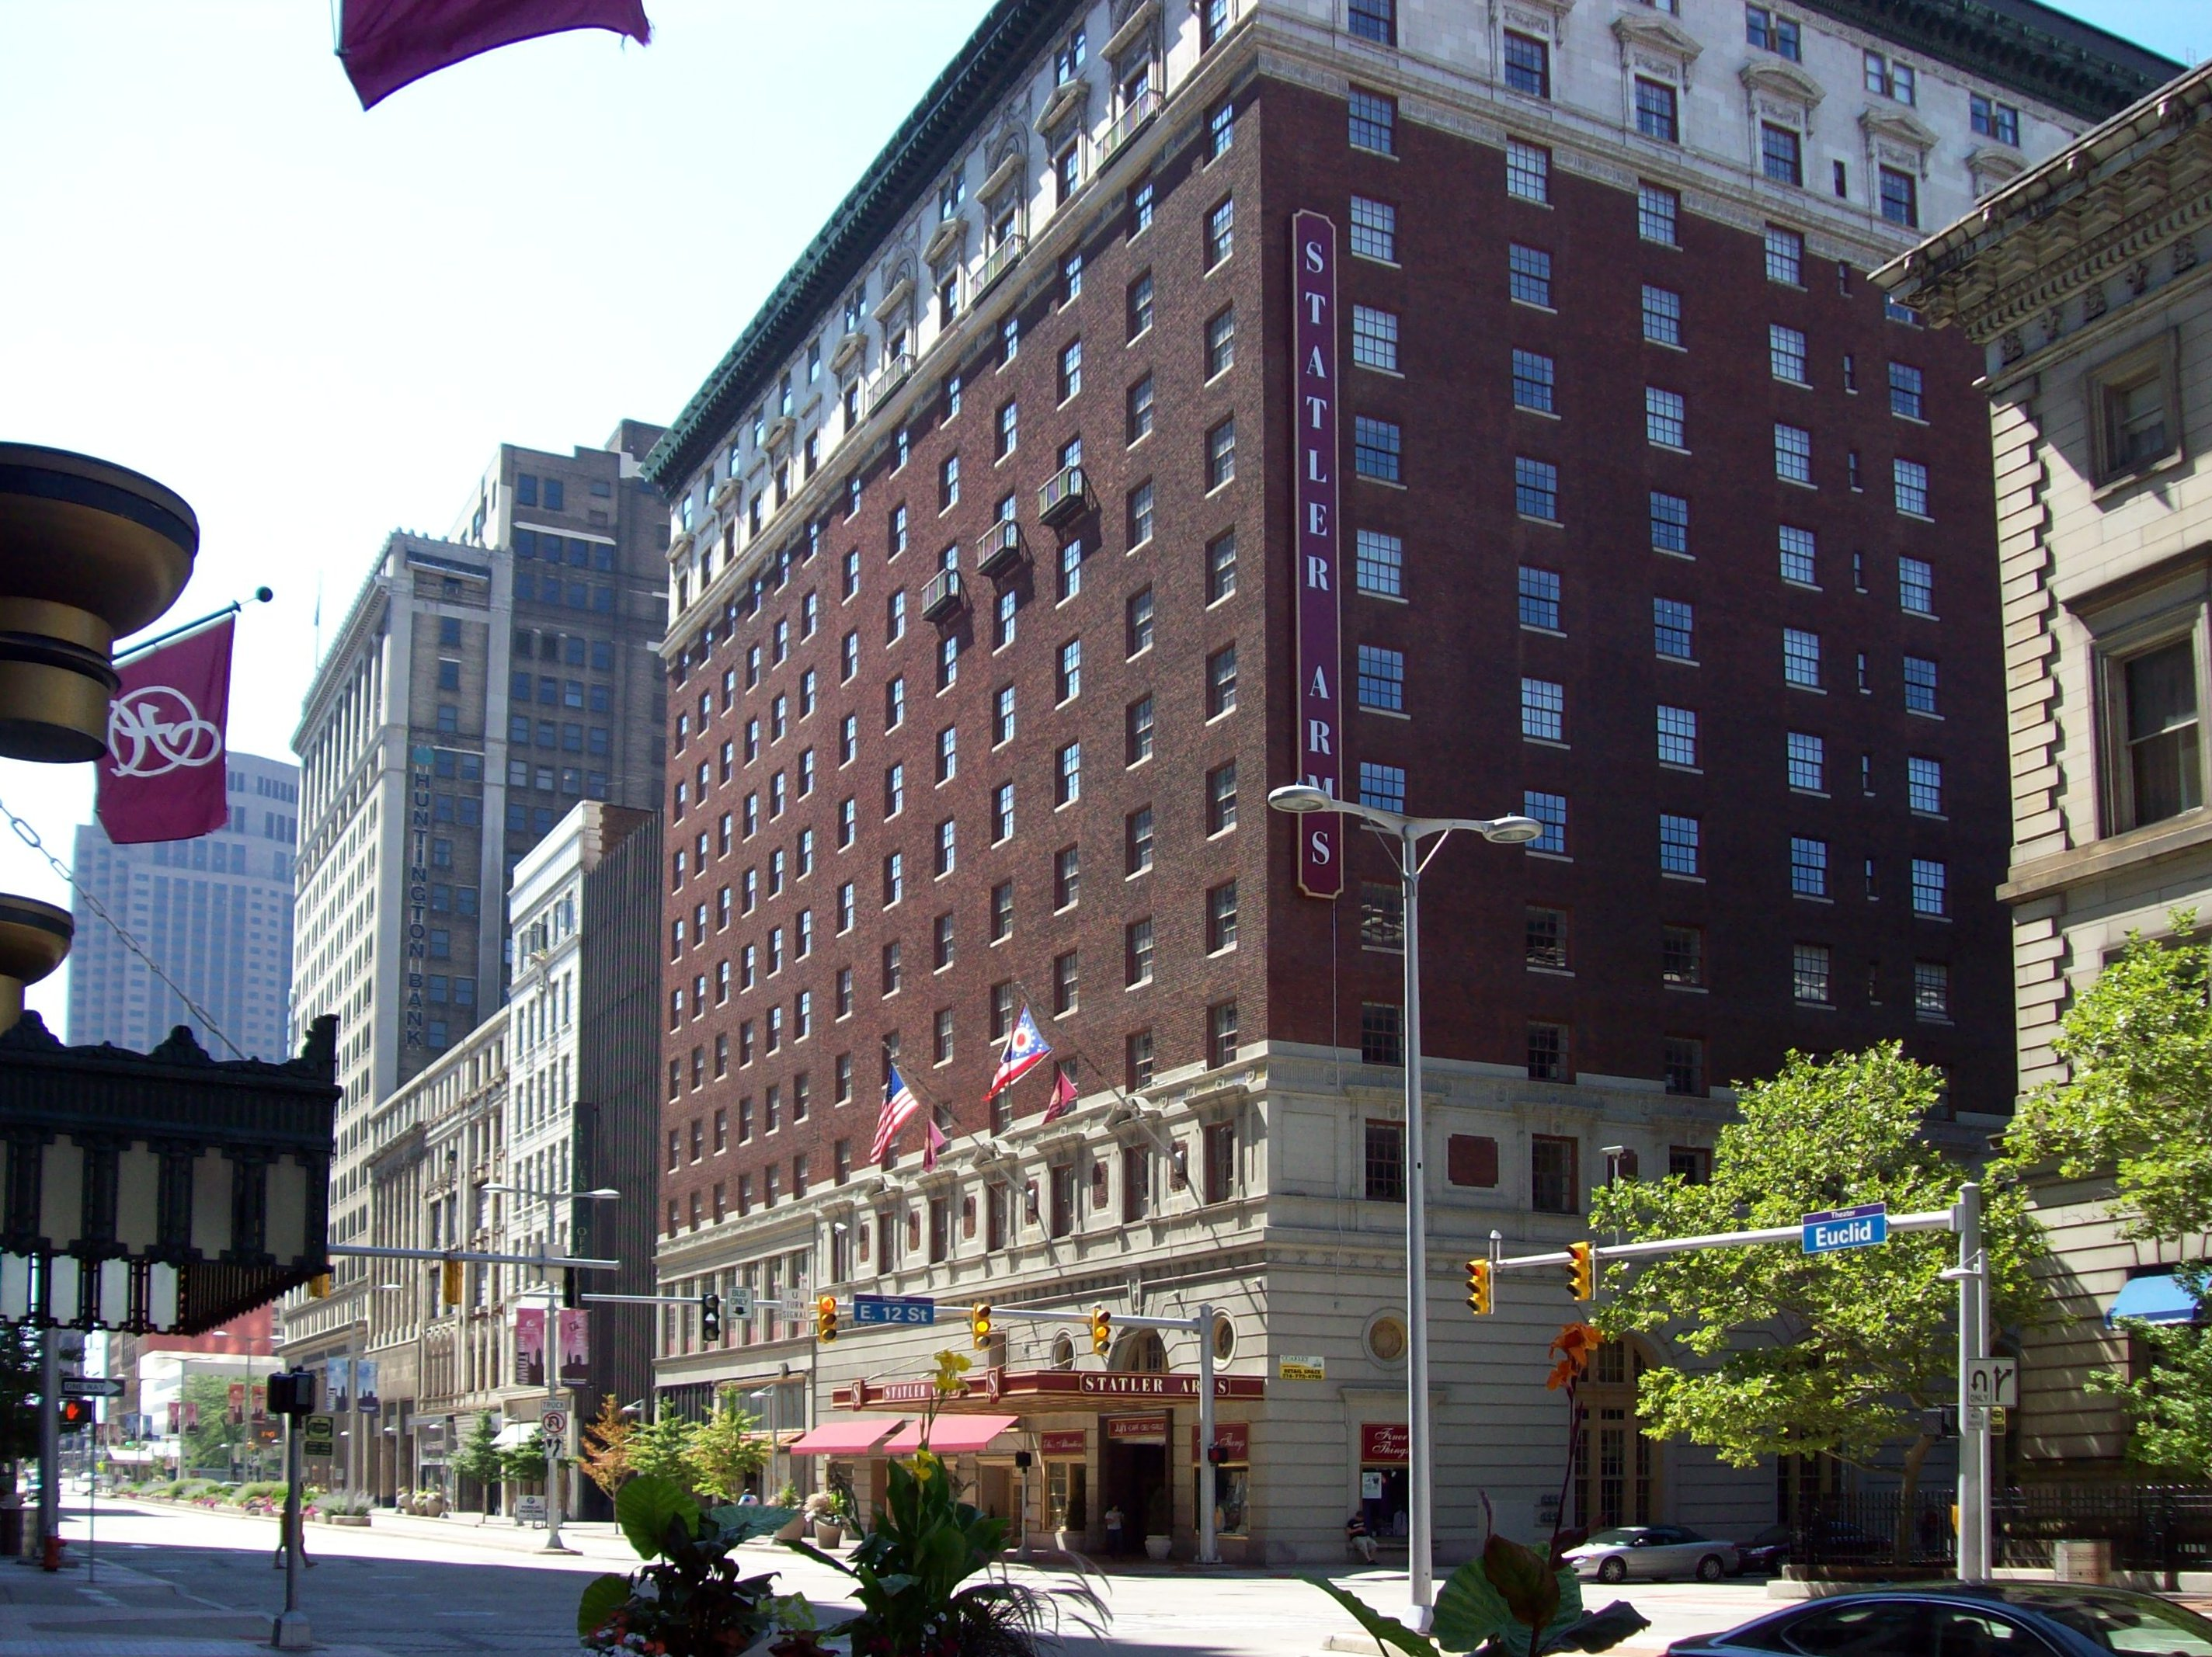 Hotel The Cleveland Londres